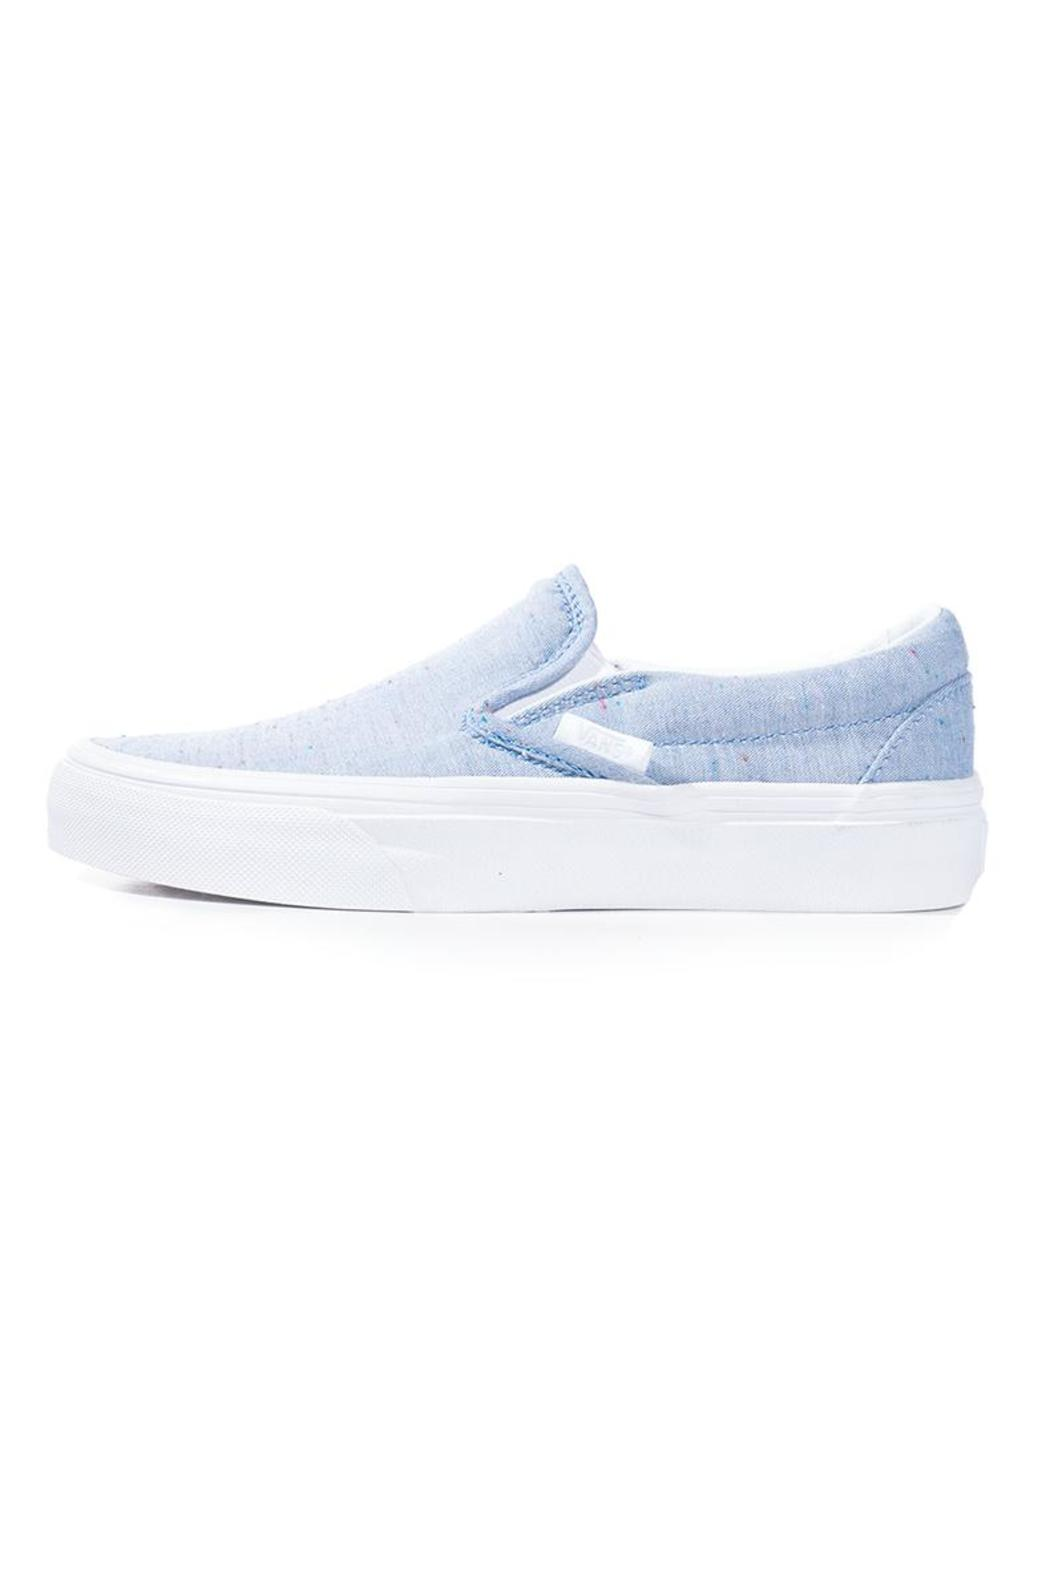 vans slip on skate shoe blue speckle